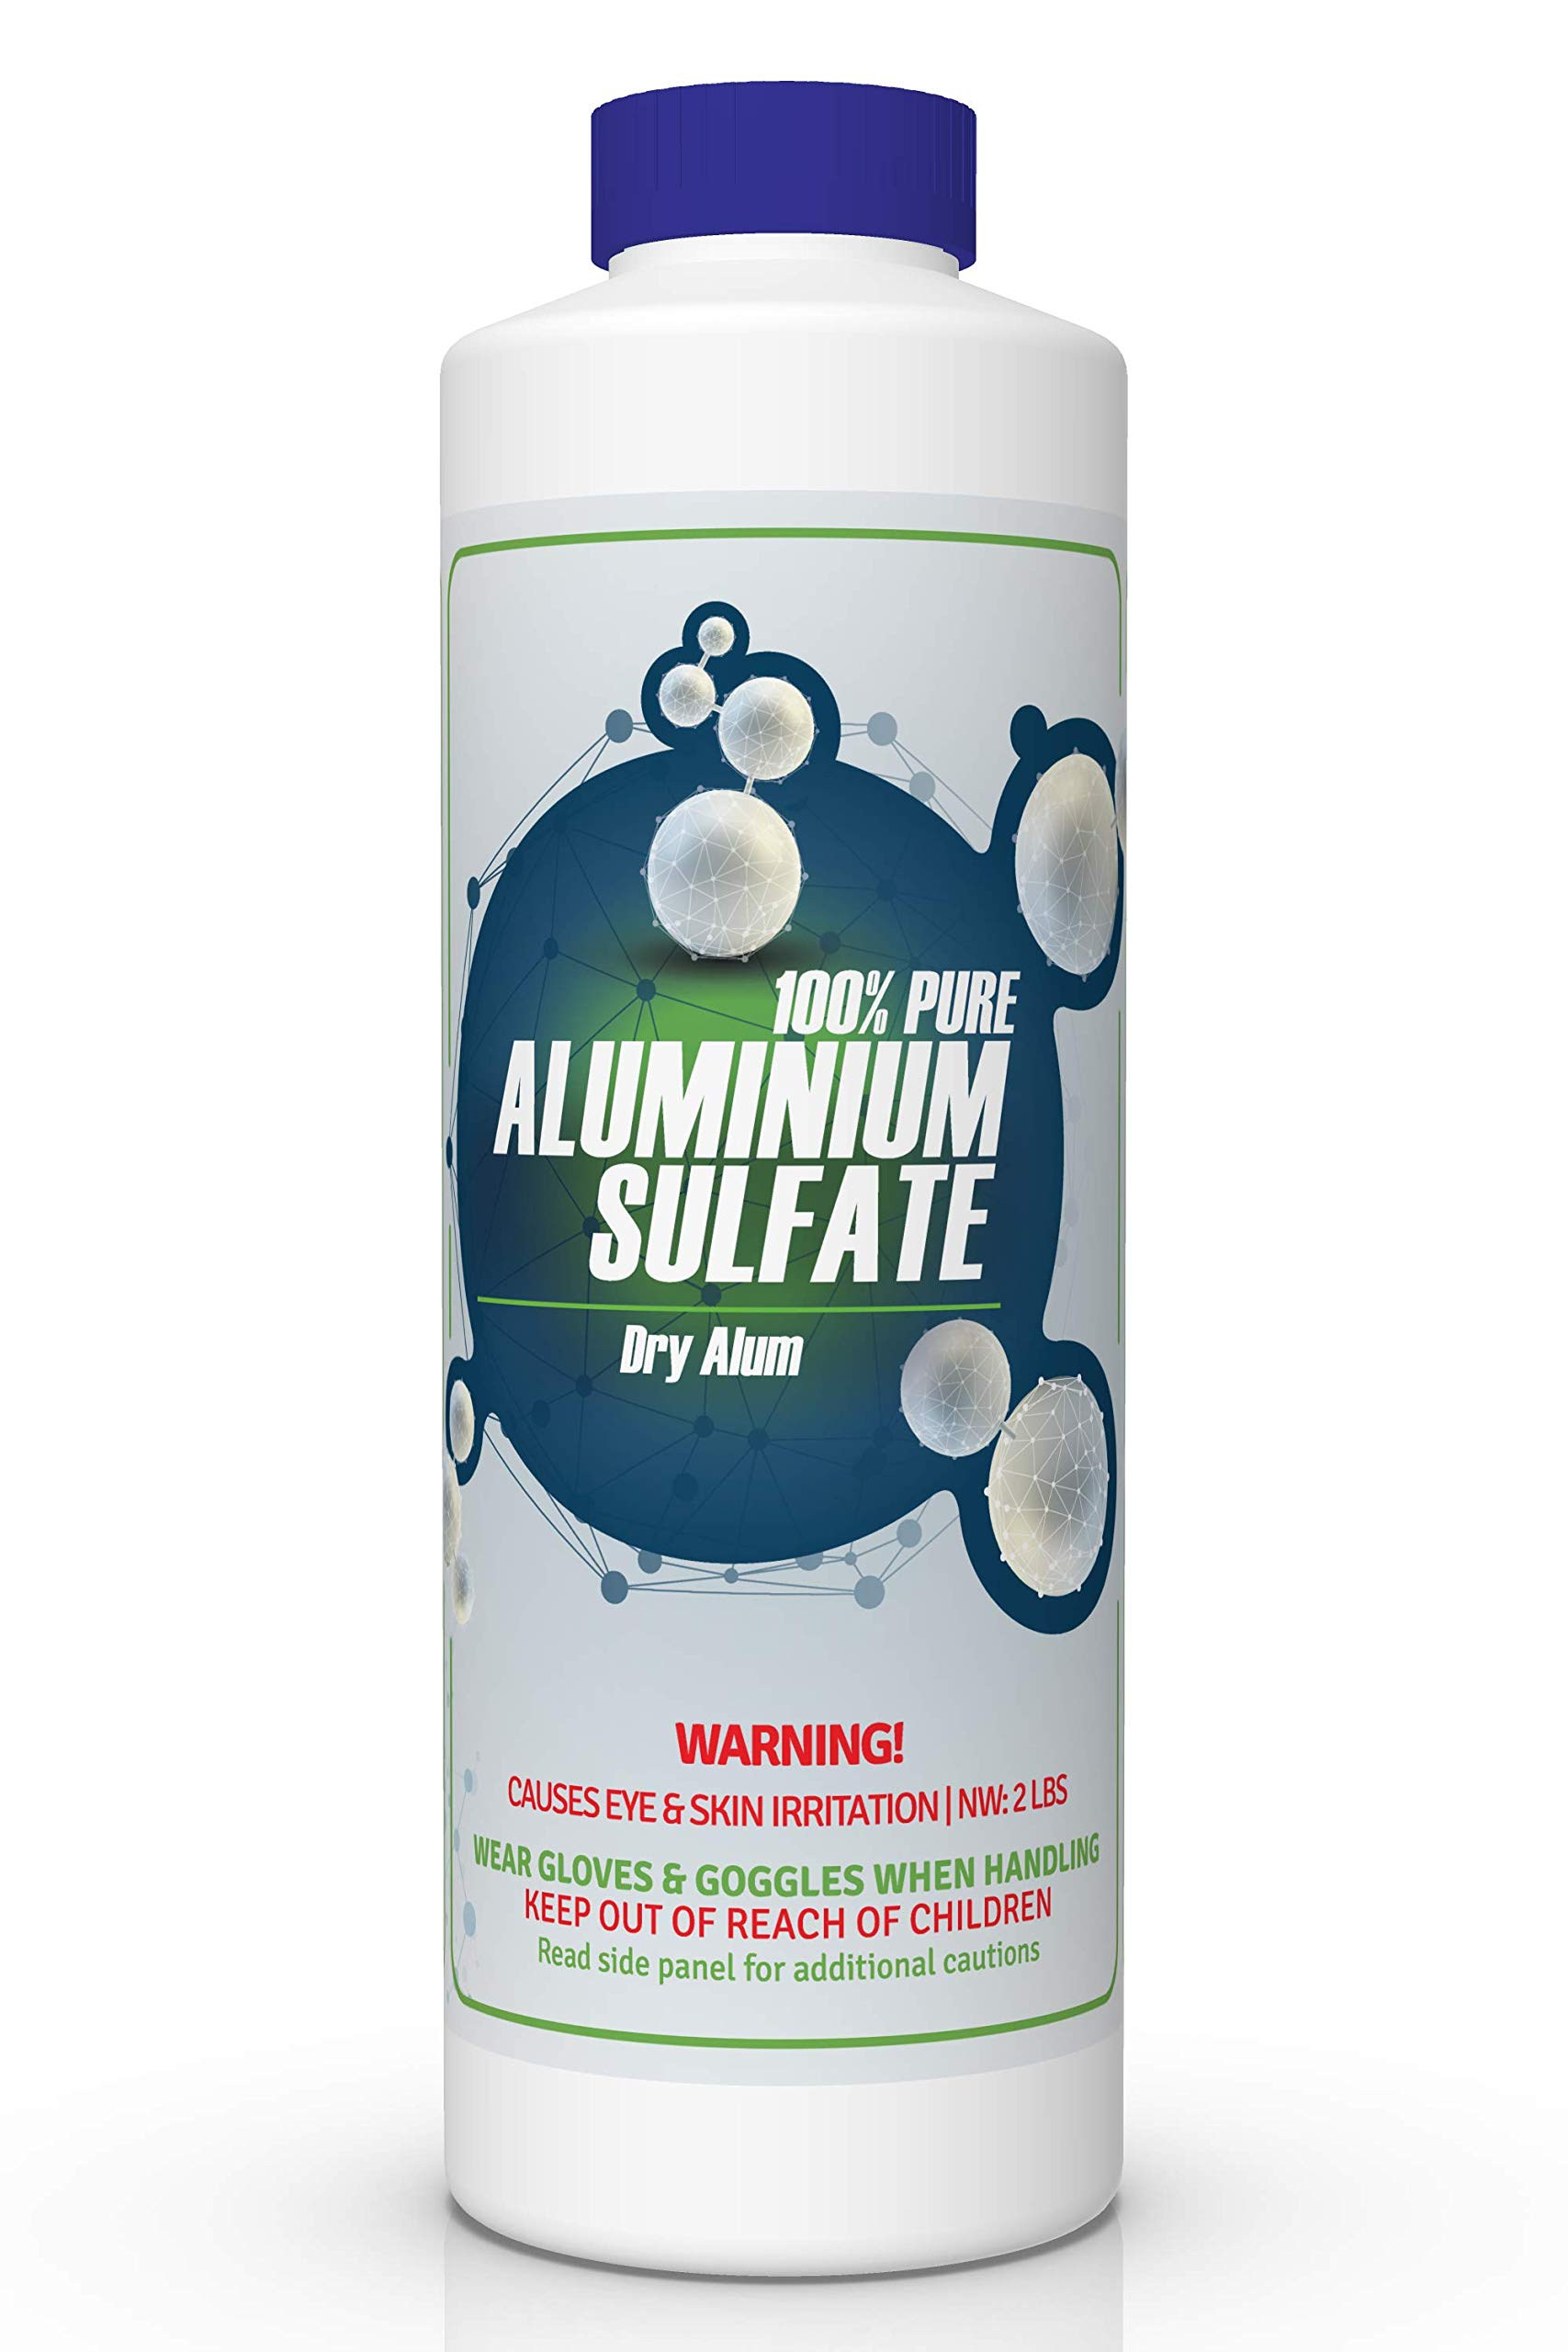 100% PURE Aluminum Sulfate, DRY ALUM CAS# 16828-12-9 by FDC